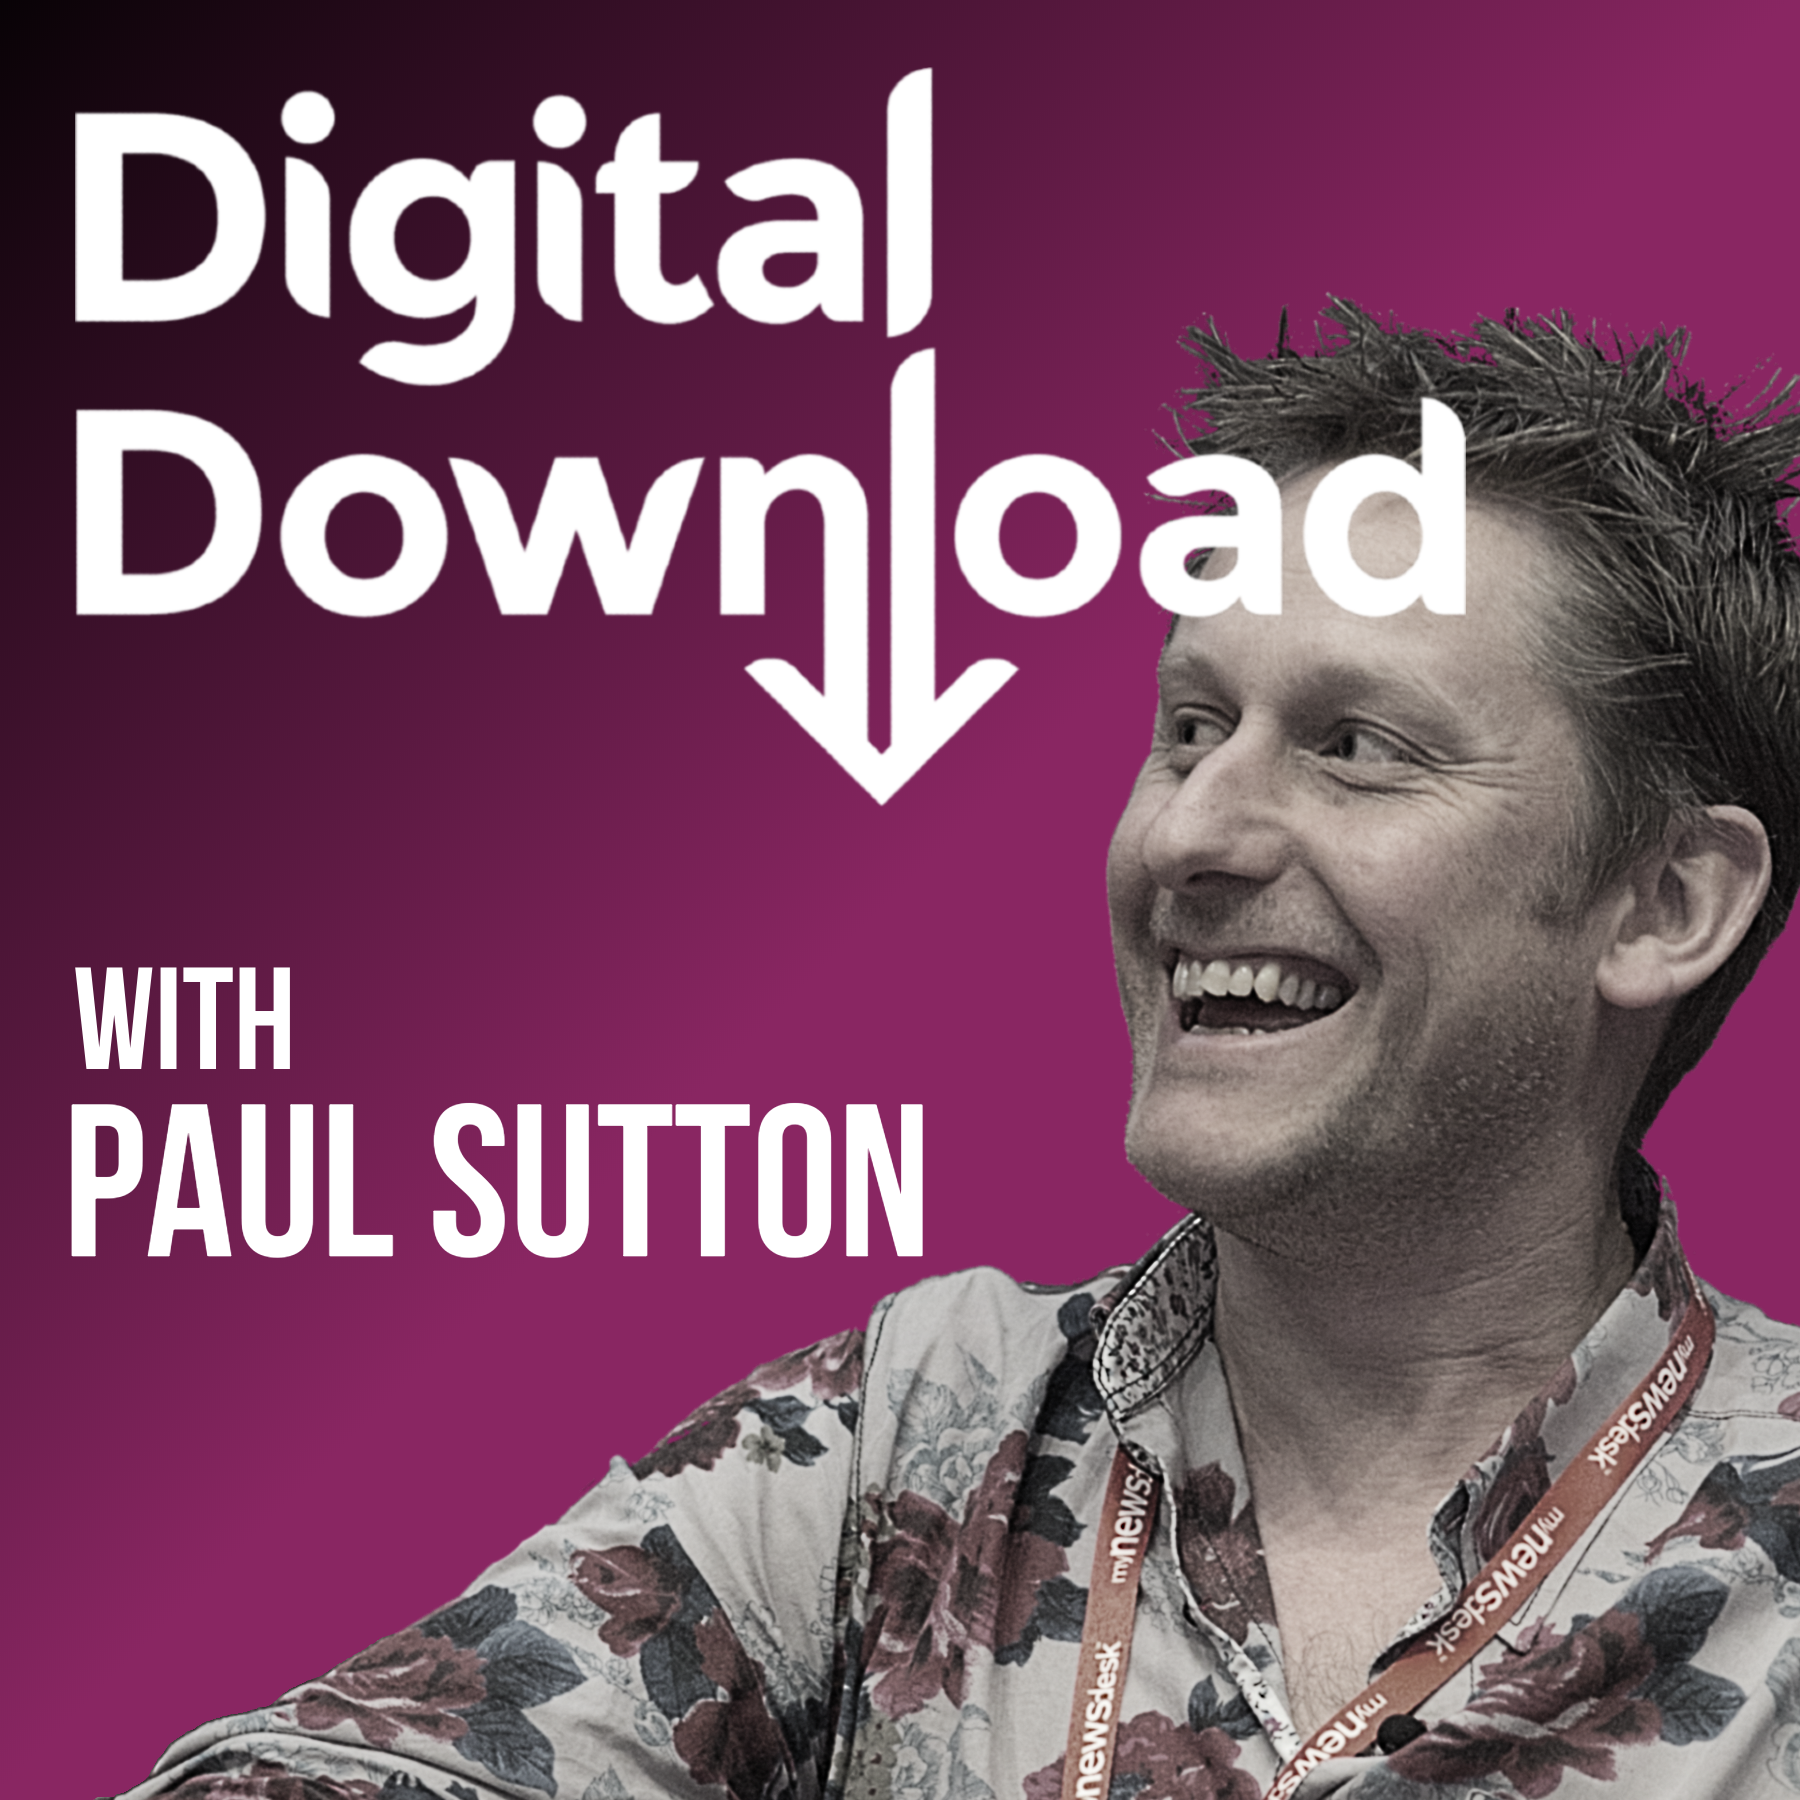 Digital Download with Paul Sutton